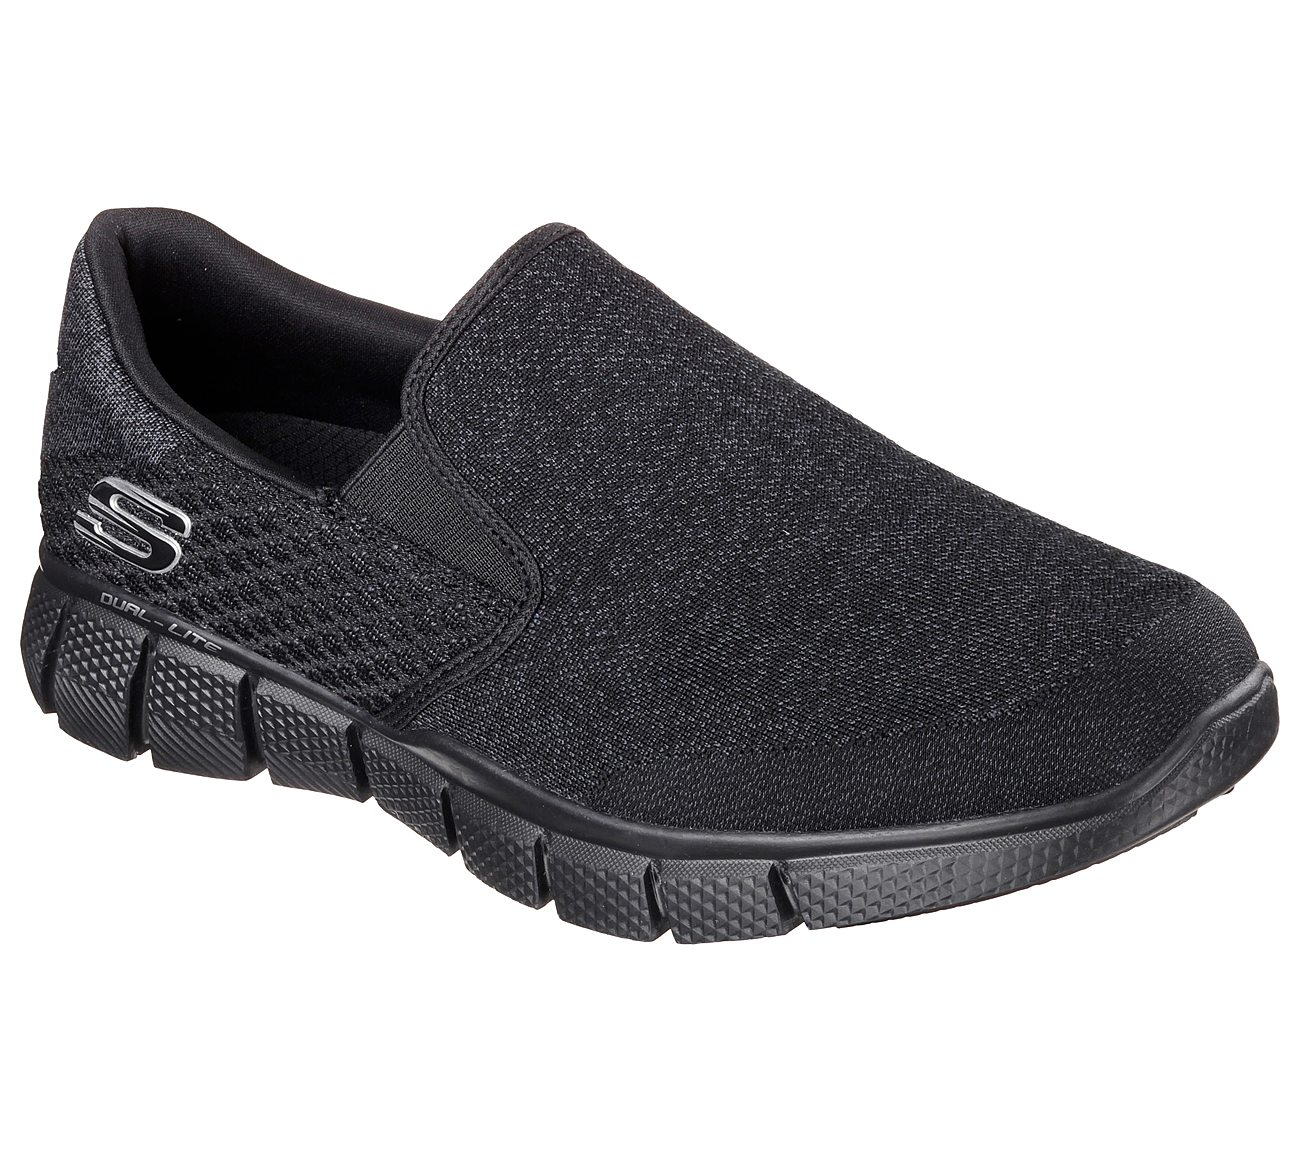 bc763fda088 Buy SKECHERS Equalizer 2.0 Sport Shoes only $58.00